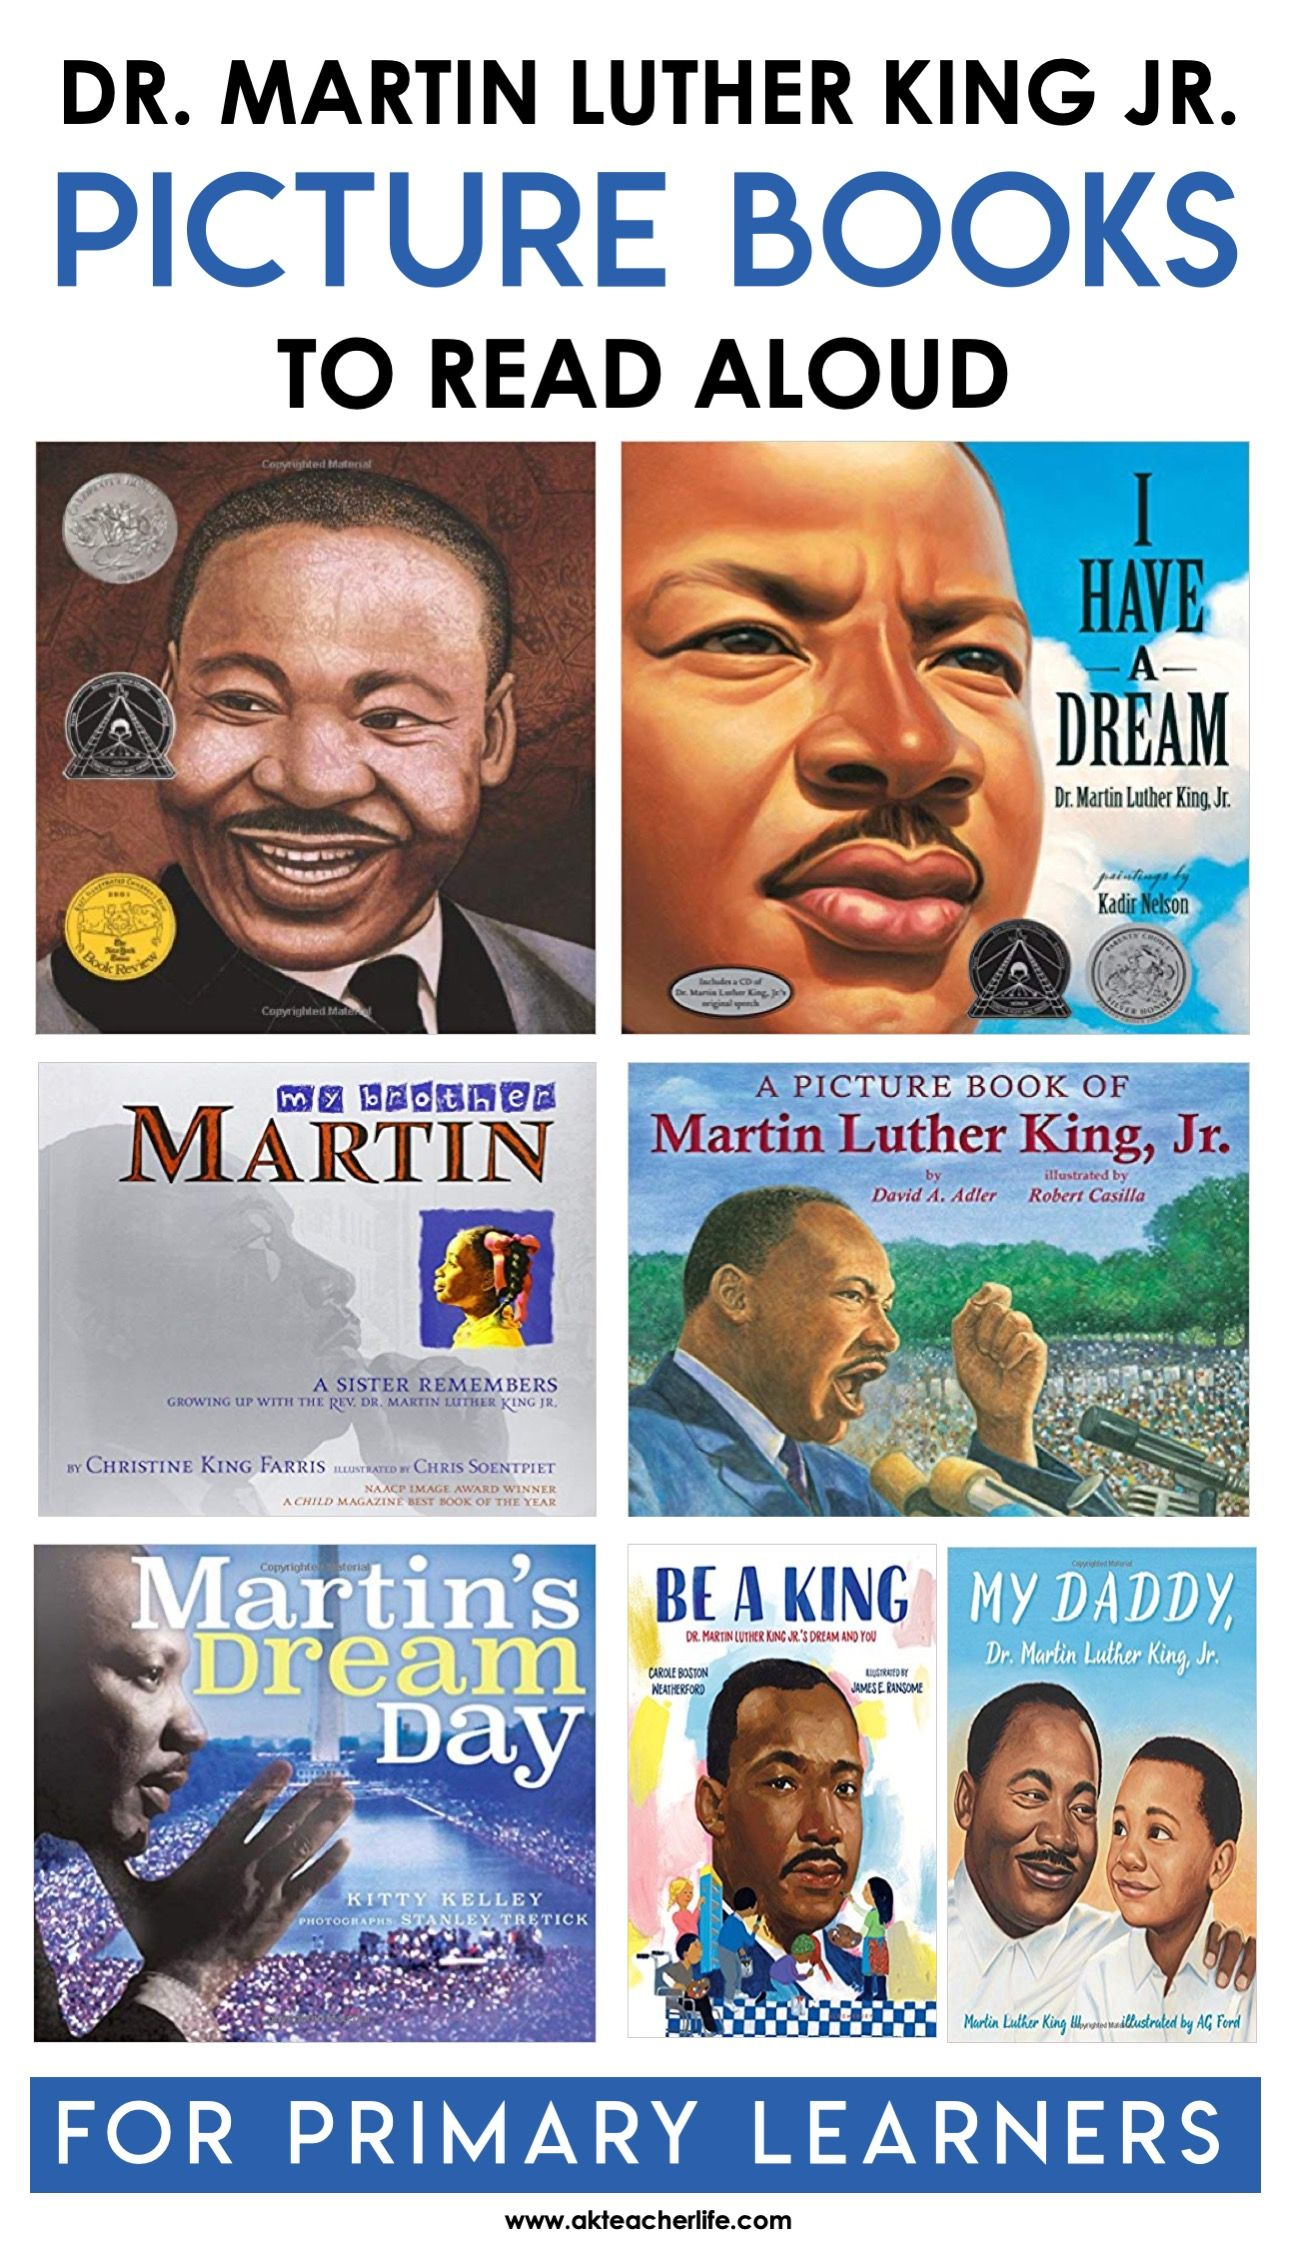 Eight Picture Books About Dr Martin Luther King Jr